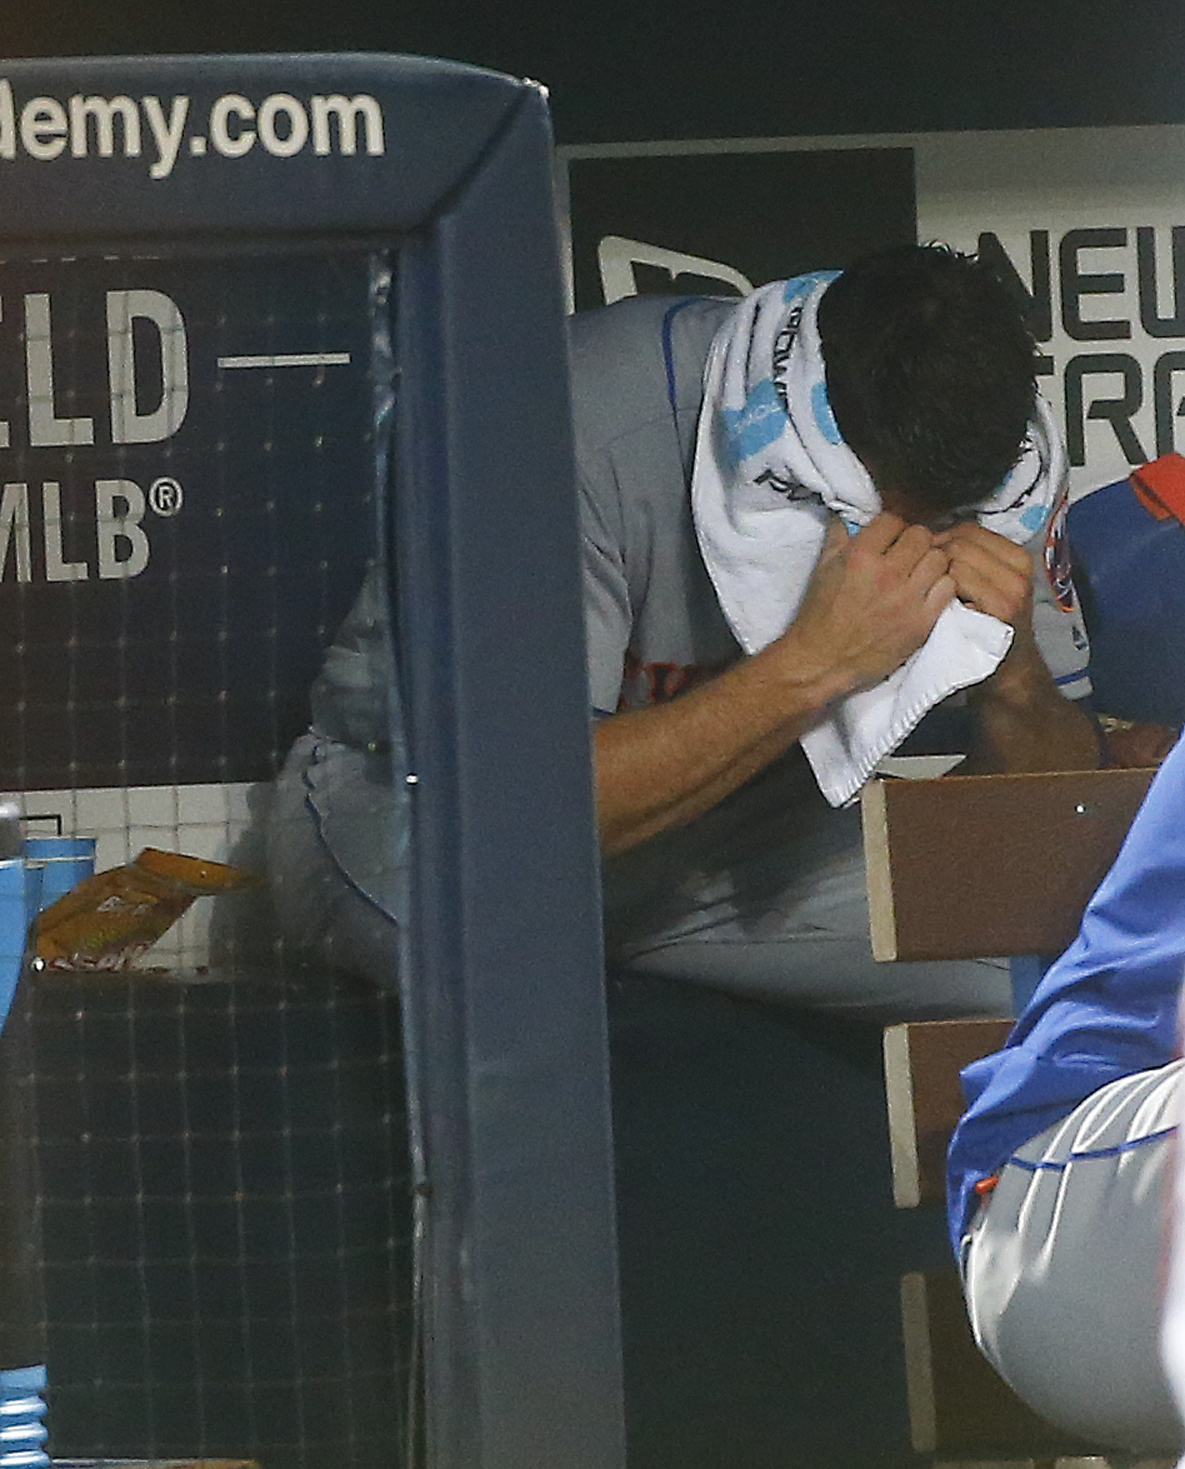 New York Mets starting pitcher Steven Matz sits on the bench after being relieved in the fifth inning of a baseball game against the Atlanta Braves, Friday, June 24, 2016, in Atlanta. (AP Photo/John Bazemore)